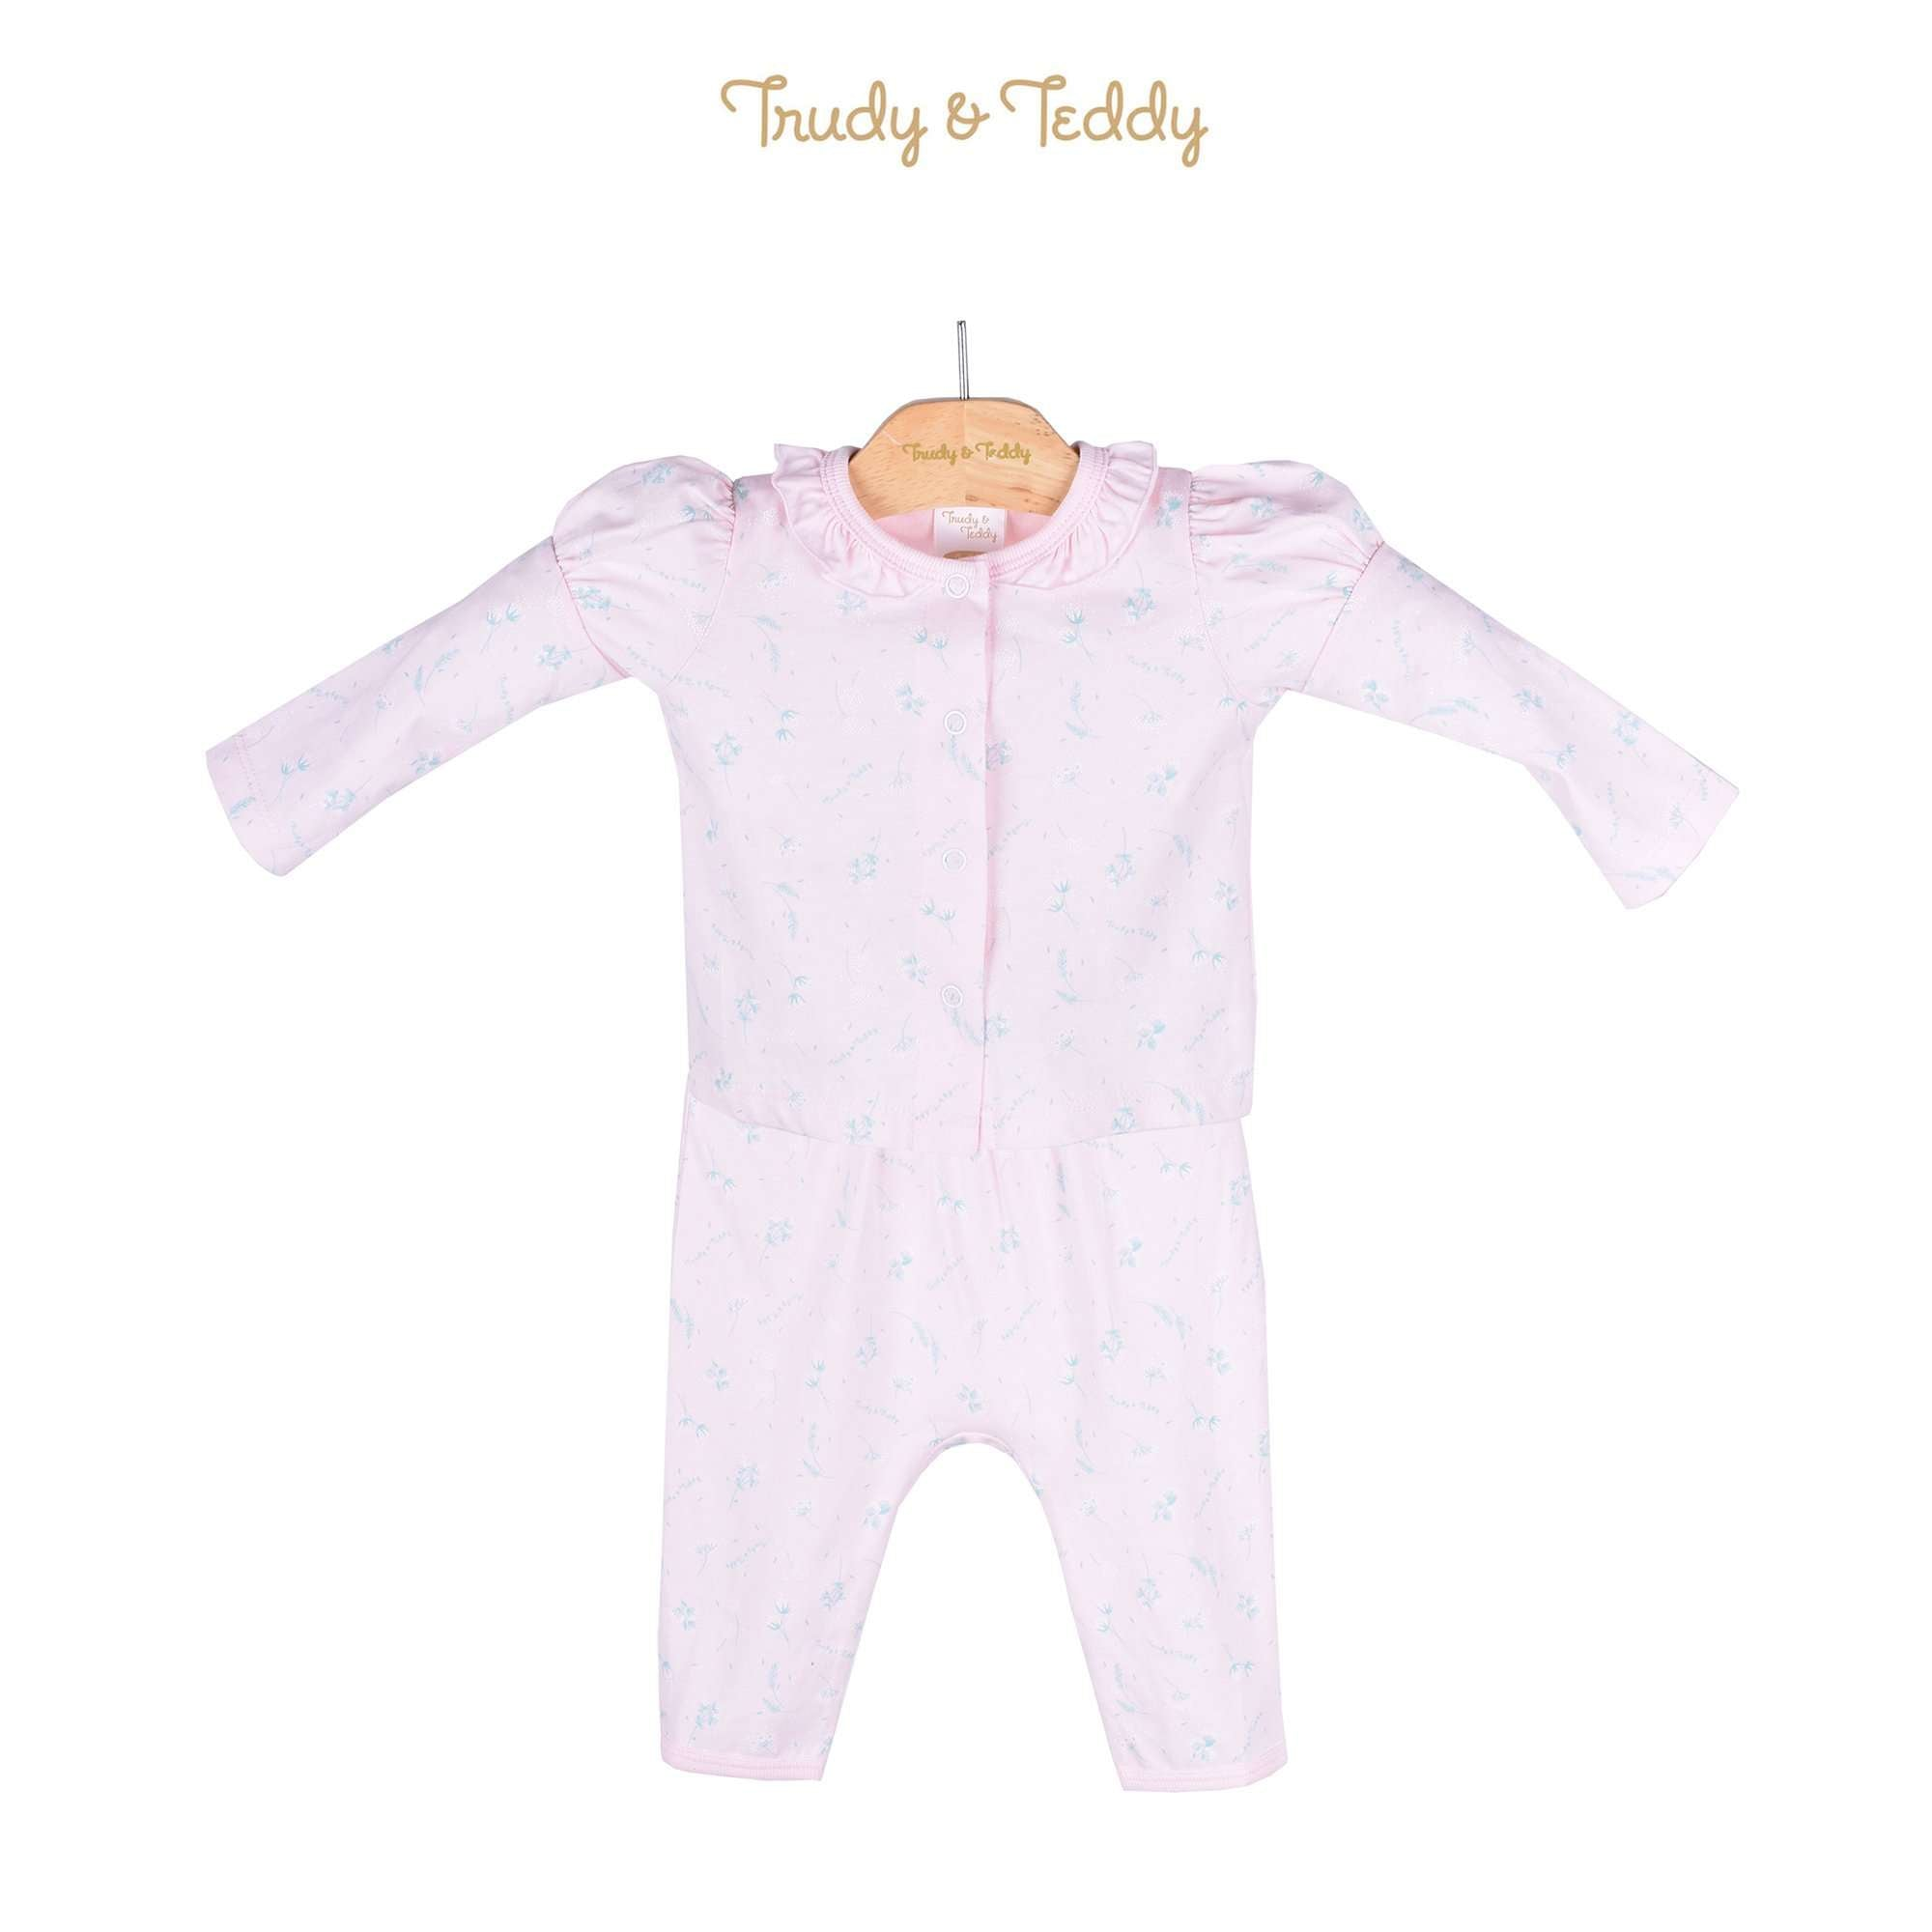 Trudy & Teddy Baby Girl Long Sleeve Long Pants Suit 820032-431 : Buy Trudy & Teddy online at CMG.MY